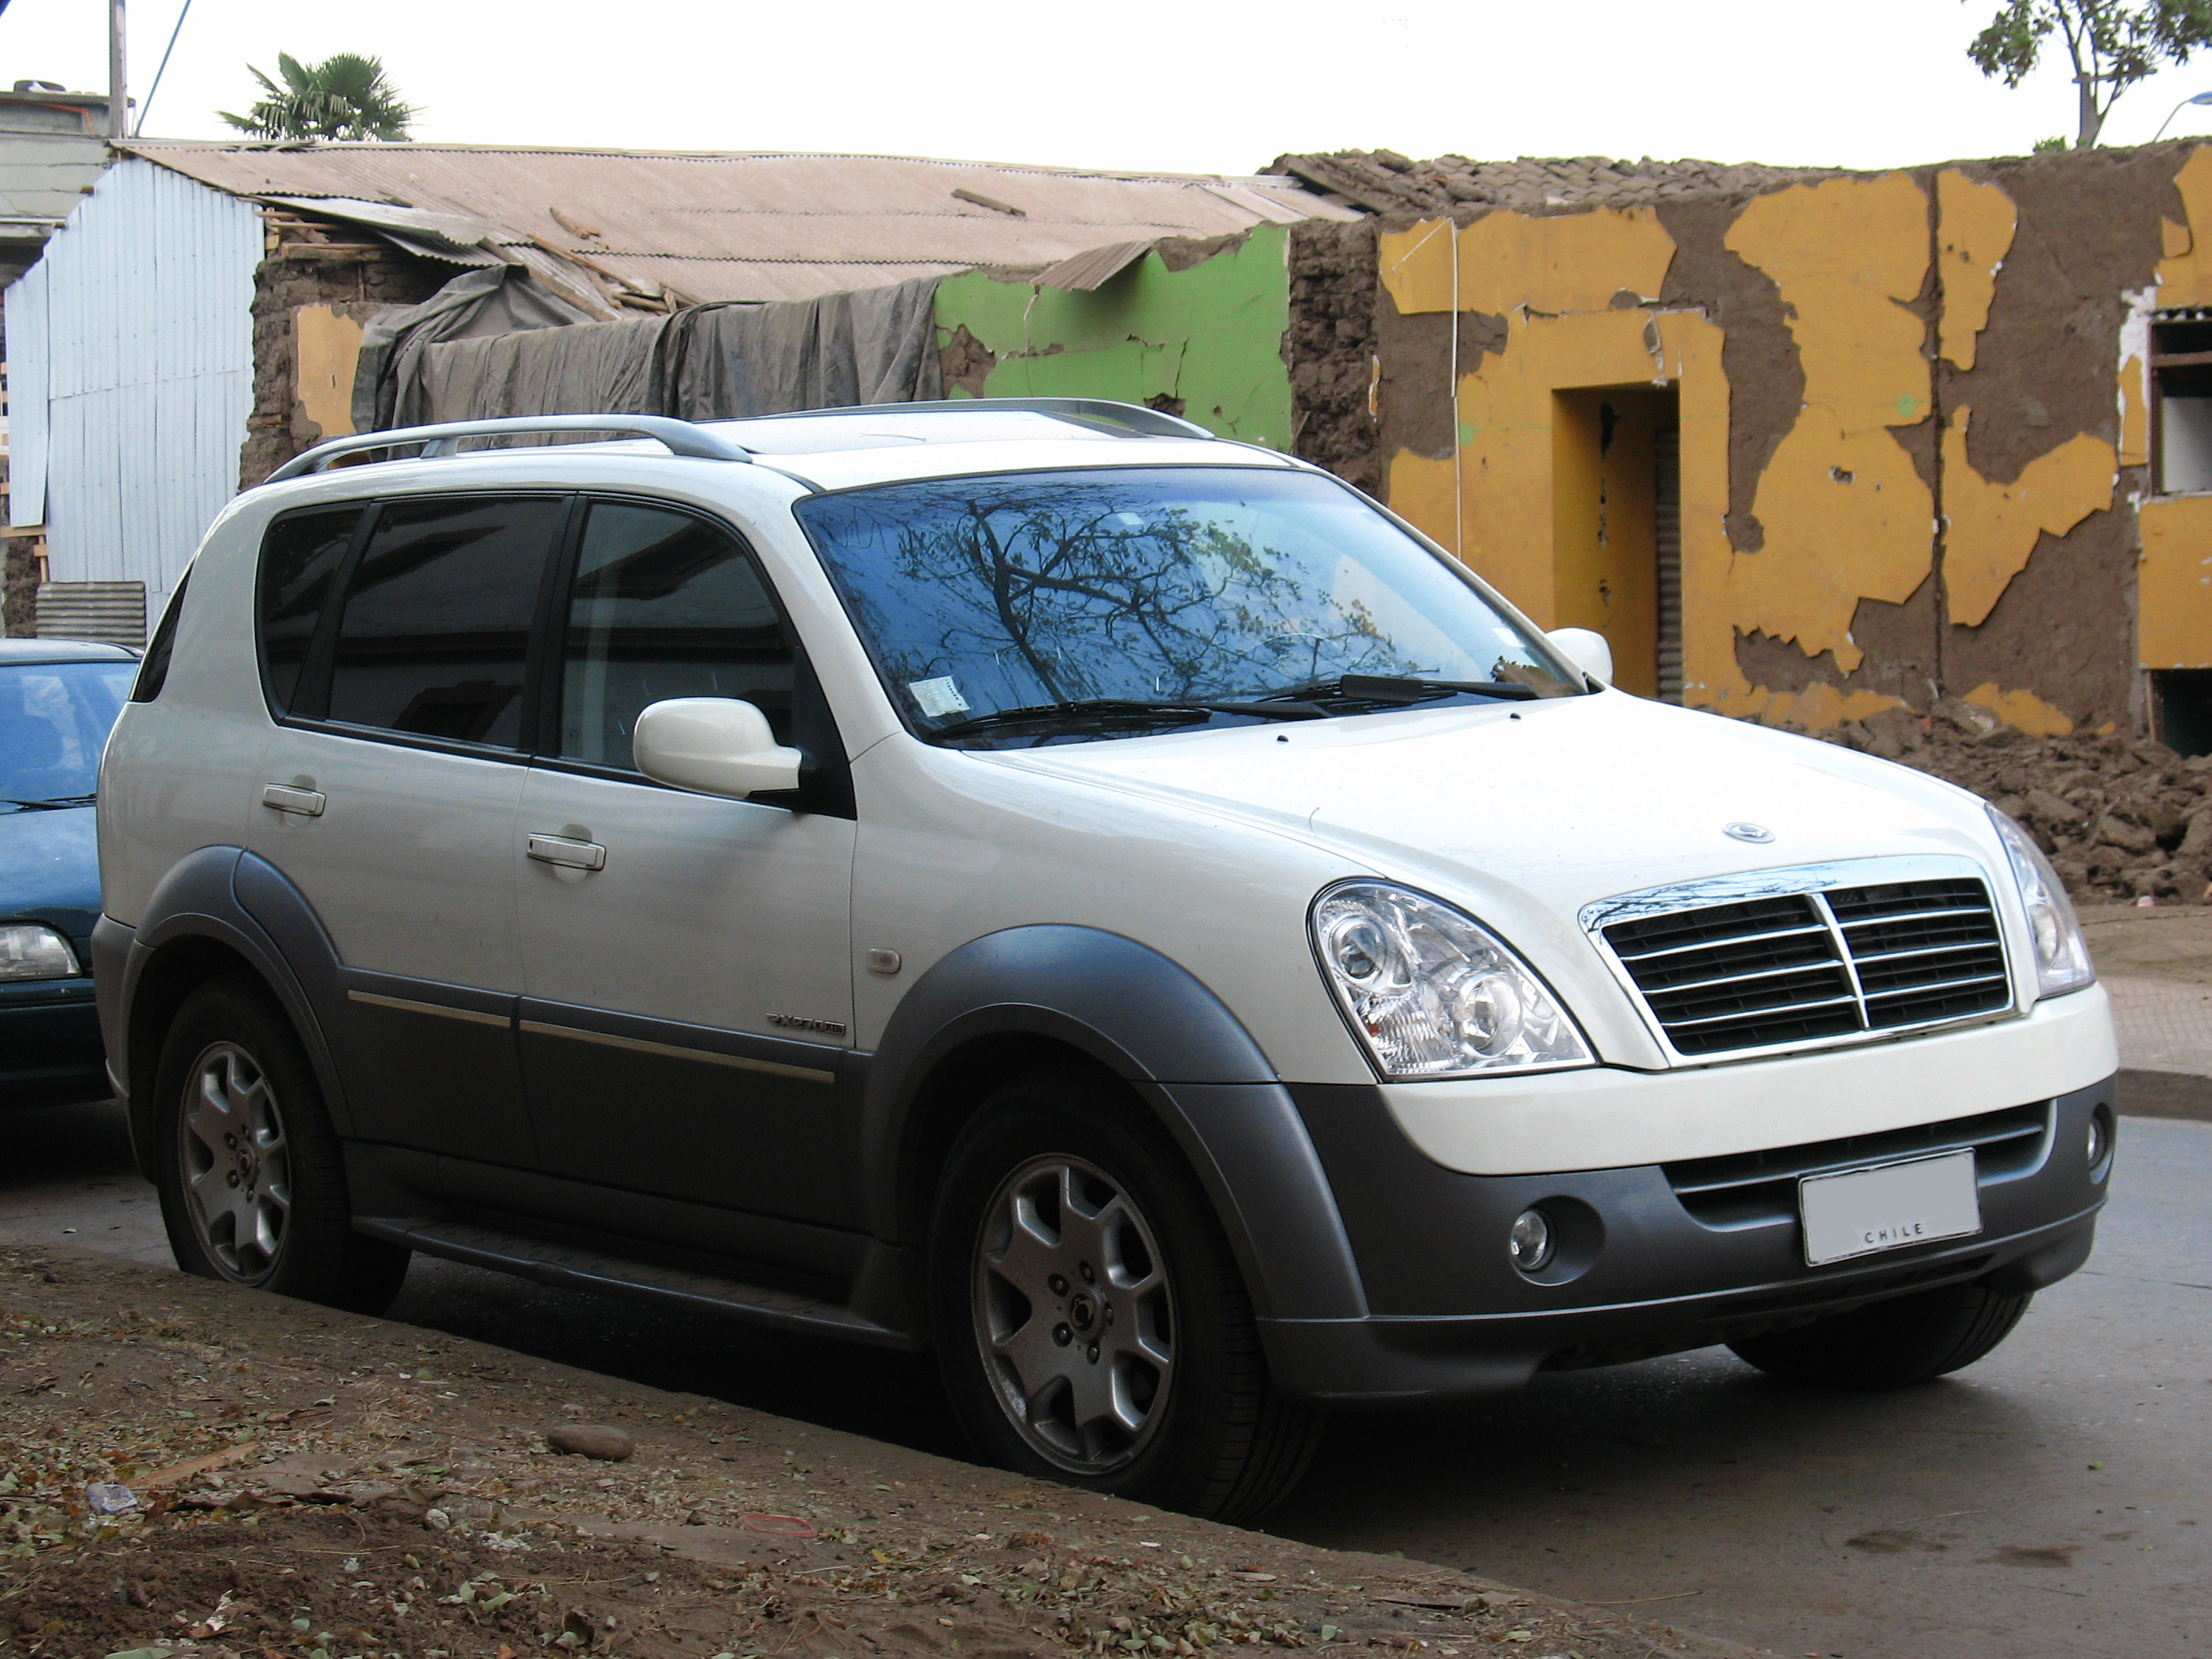 ssangyong rexton ii 2007 images